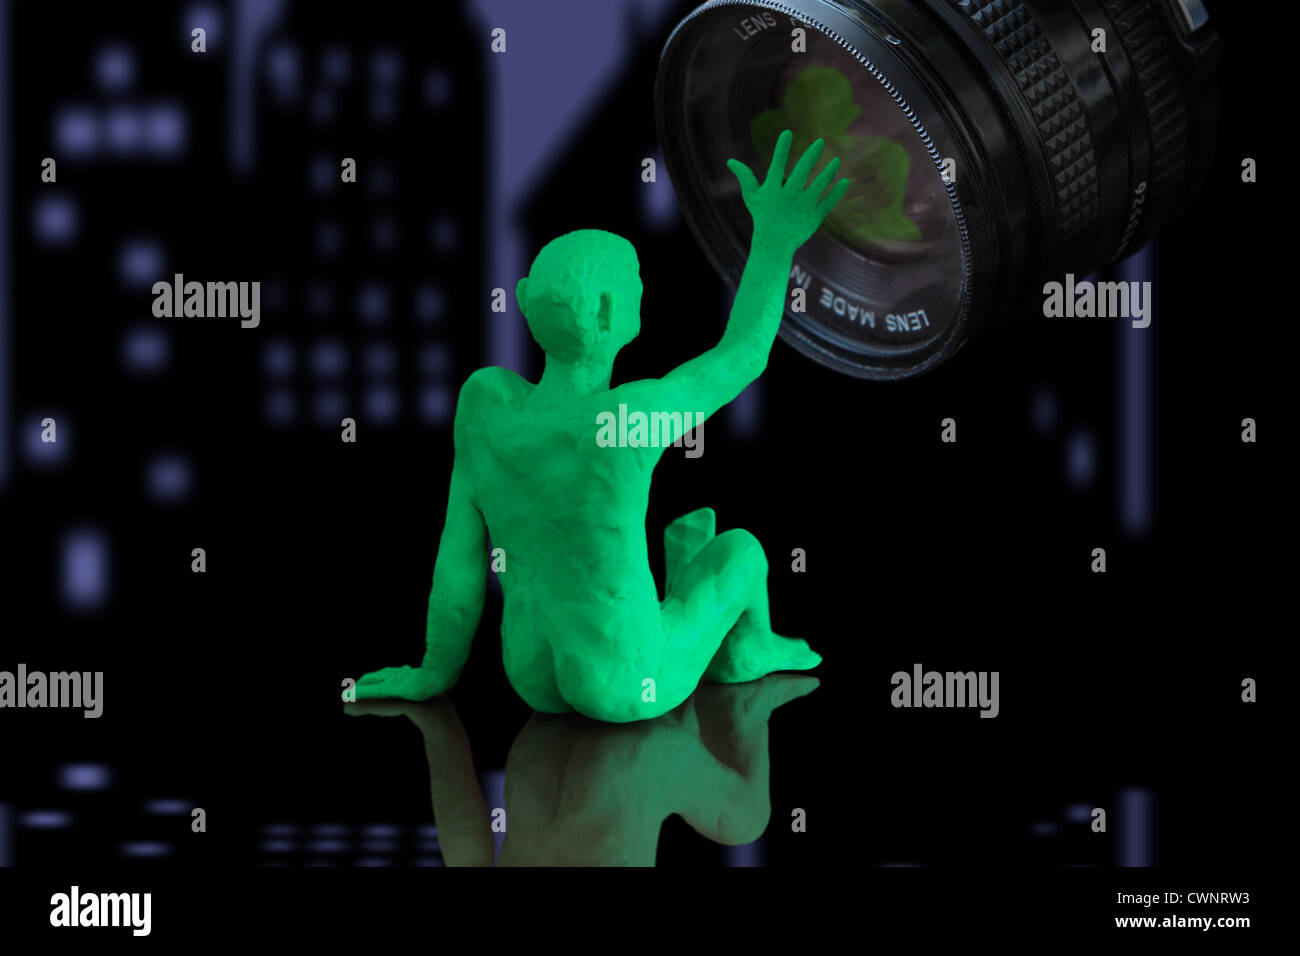 we see a figurine that represents a person sitting down and interacting with a camera lens. City at night in background - Stock Image